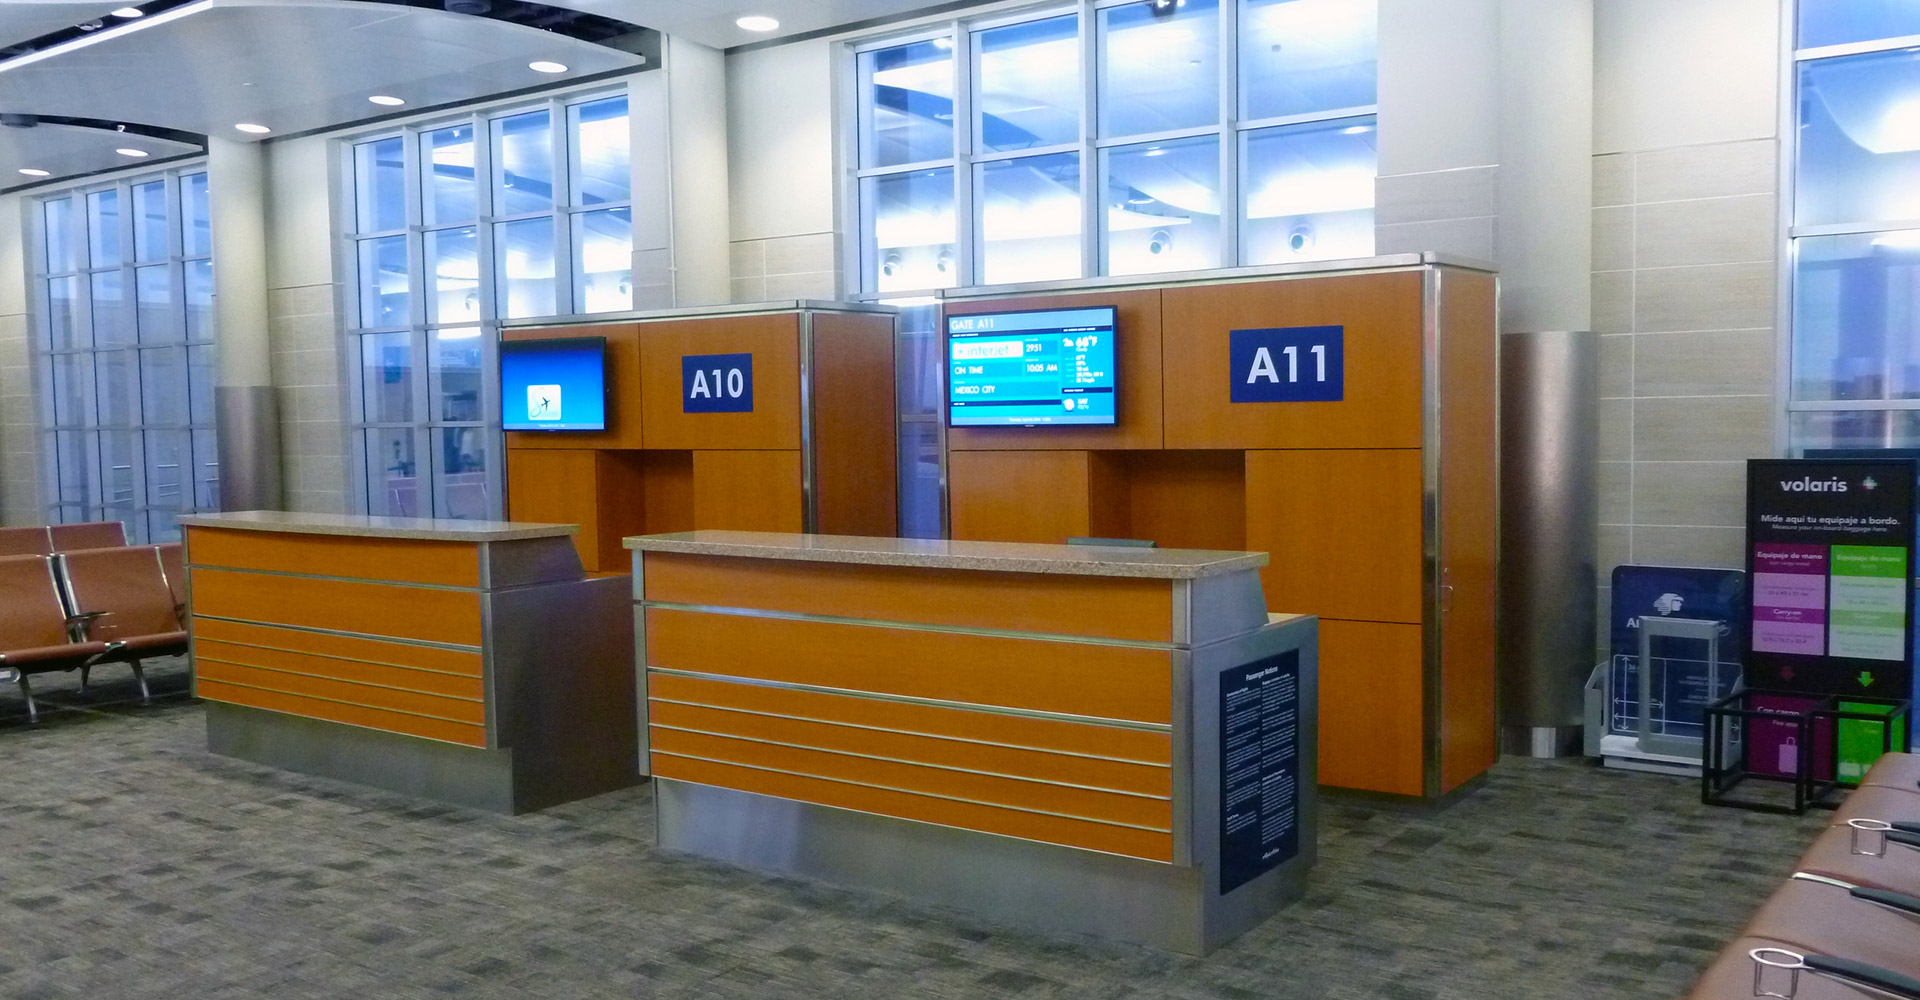 San Antonio International Airport Interior Ticket Counters.